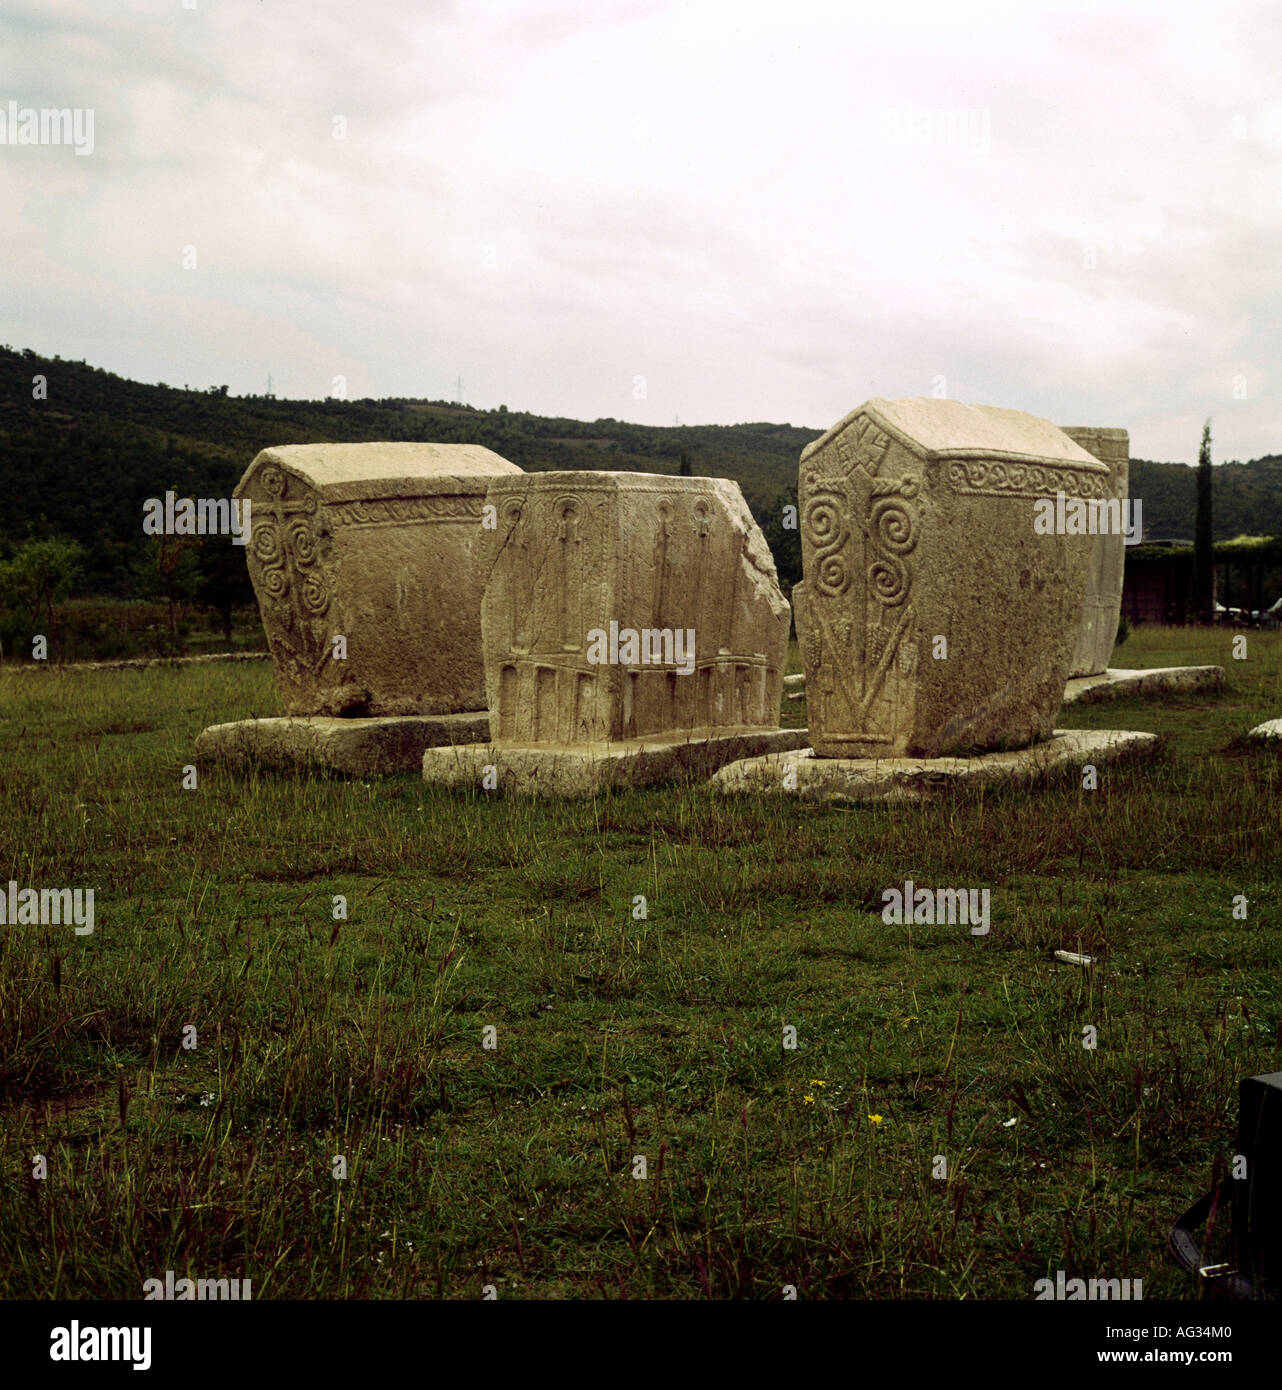 religion, christianity, sects, Bogomilism, Bogomile tomb, three stones with geometric 12th - 14th century, graveyard of Stolac, Herzegovina, historic, historical, Europe, Bosnia, middle ages, church history, heretic, gnosis, gnostics, sect, tombs, tombstone, tombstones, medieval, Additional-Rights-Clearances-NA - Stock Image